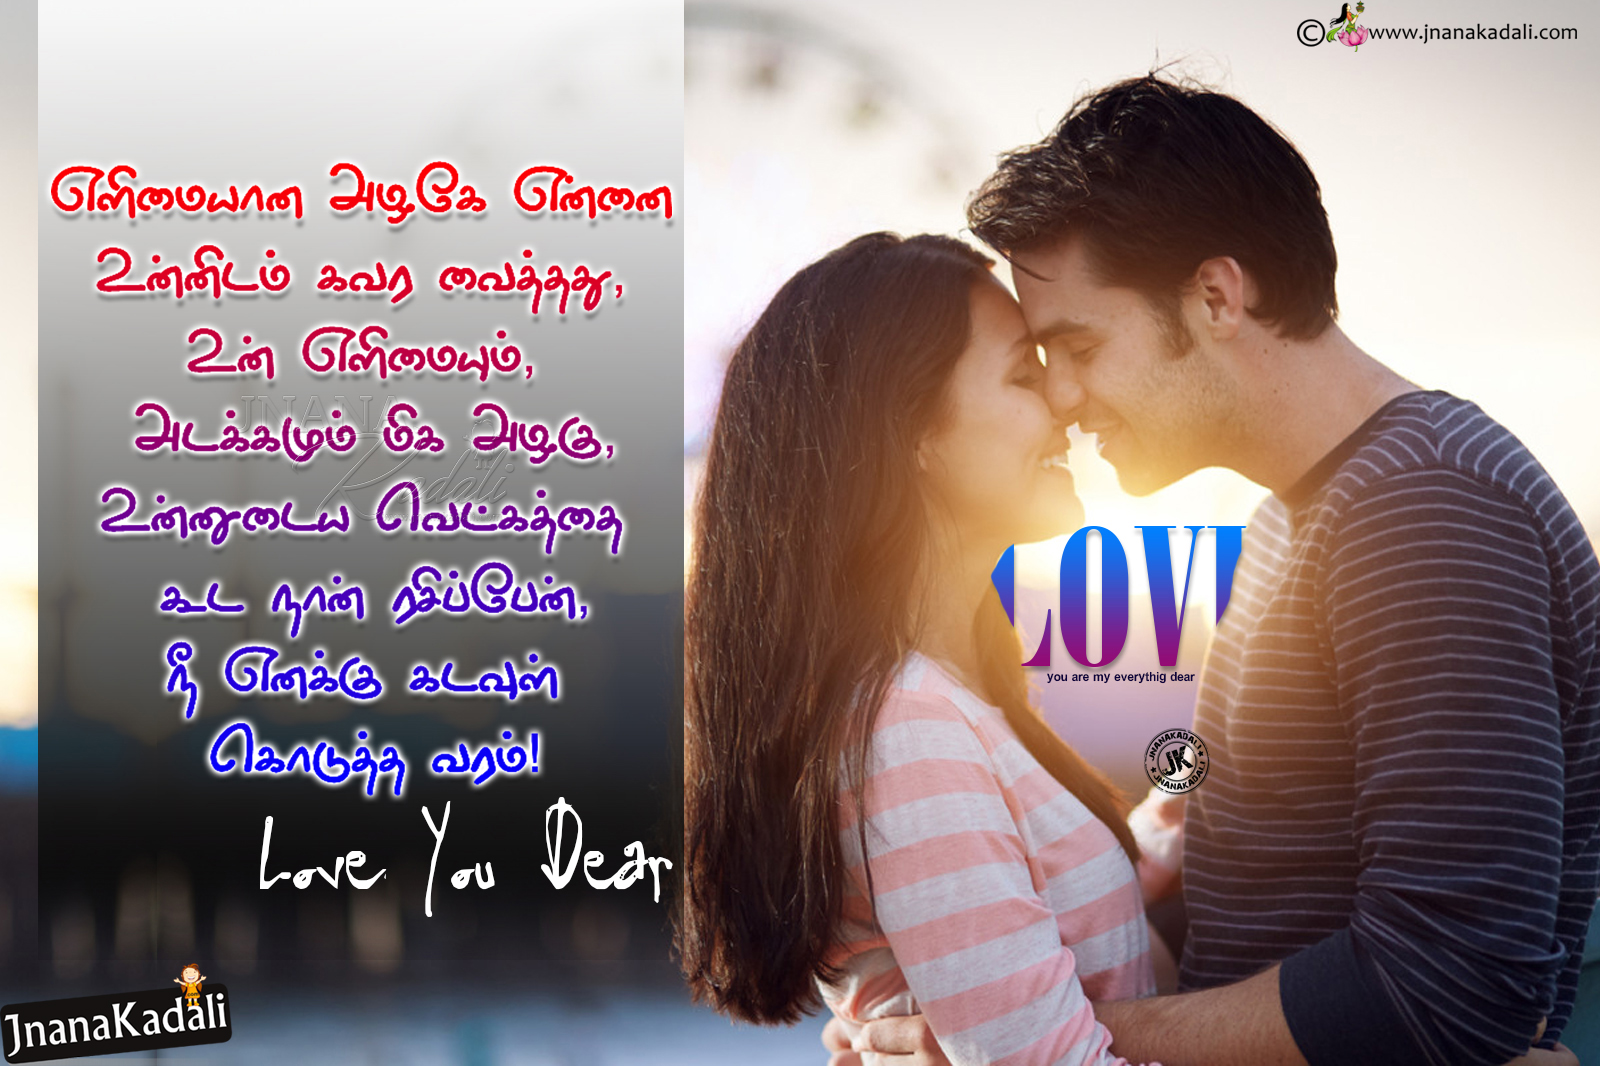 Romantic Love Messages In Tamil Wife And Husband Romantic Love Thought In Tamil Font Jnana Kadali Com Telugu Quotes English Quotes Hindi Quotes Tamil Quotes Dharmasandehalu